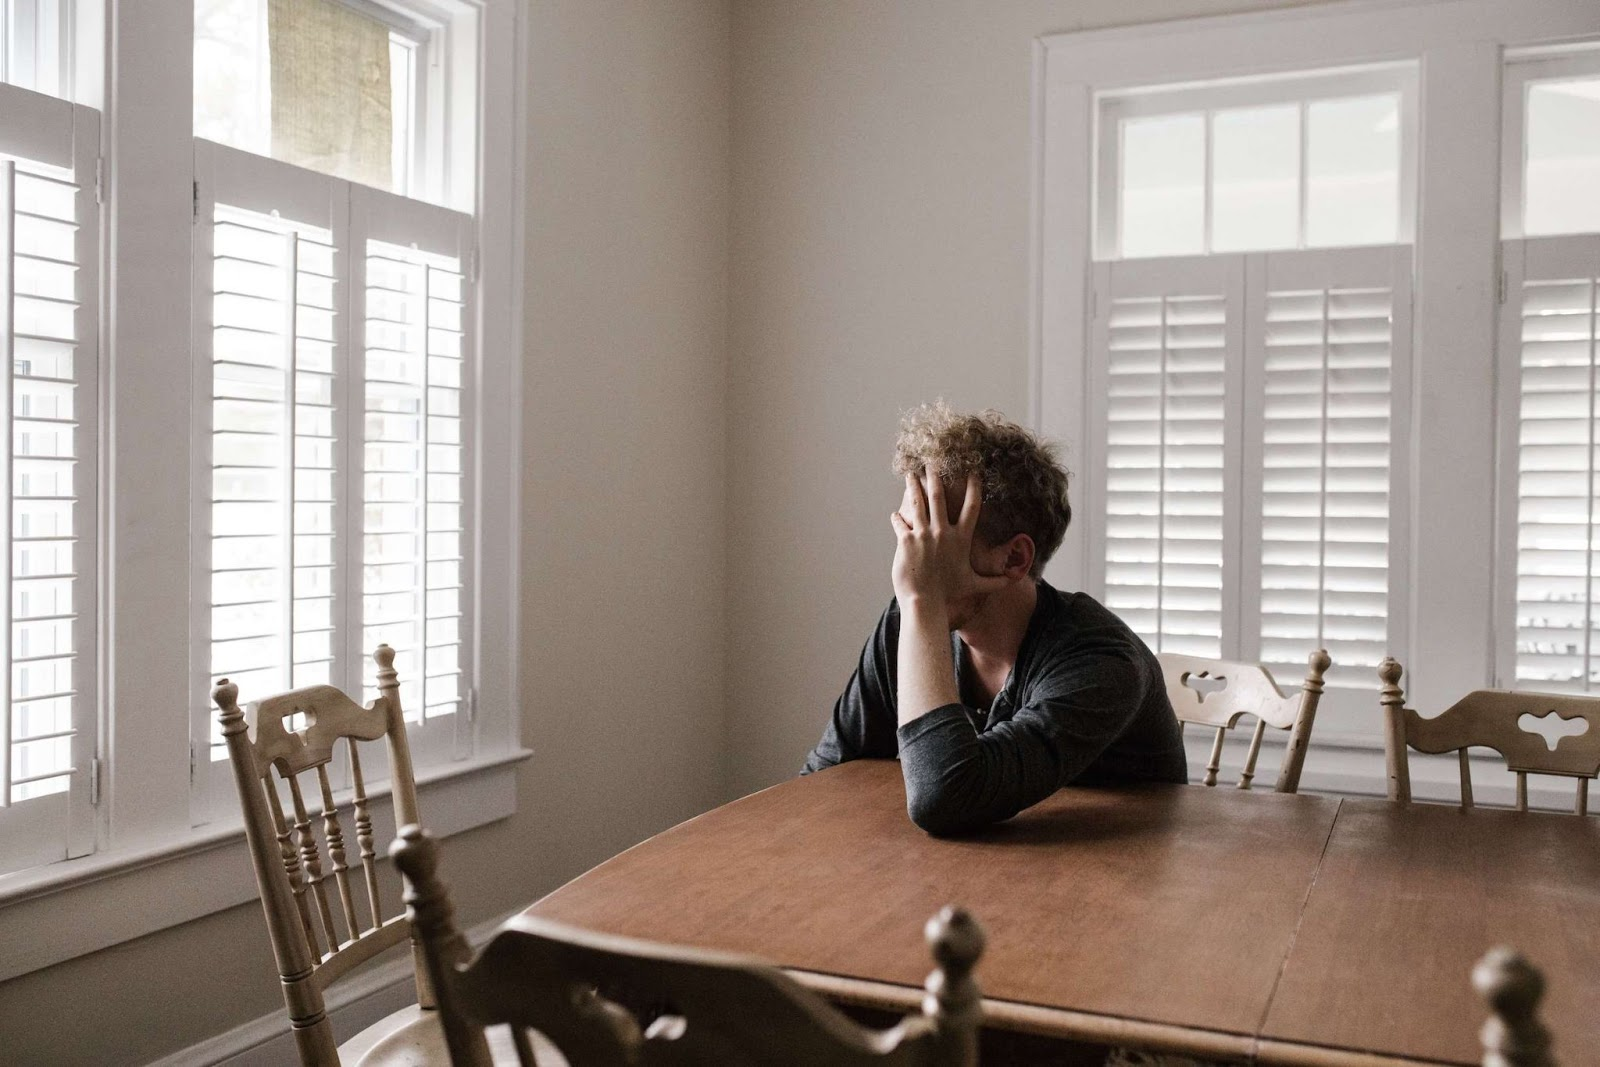 A man at his kitchen table holds his head in his hand, face obscured, as he stares out the window